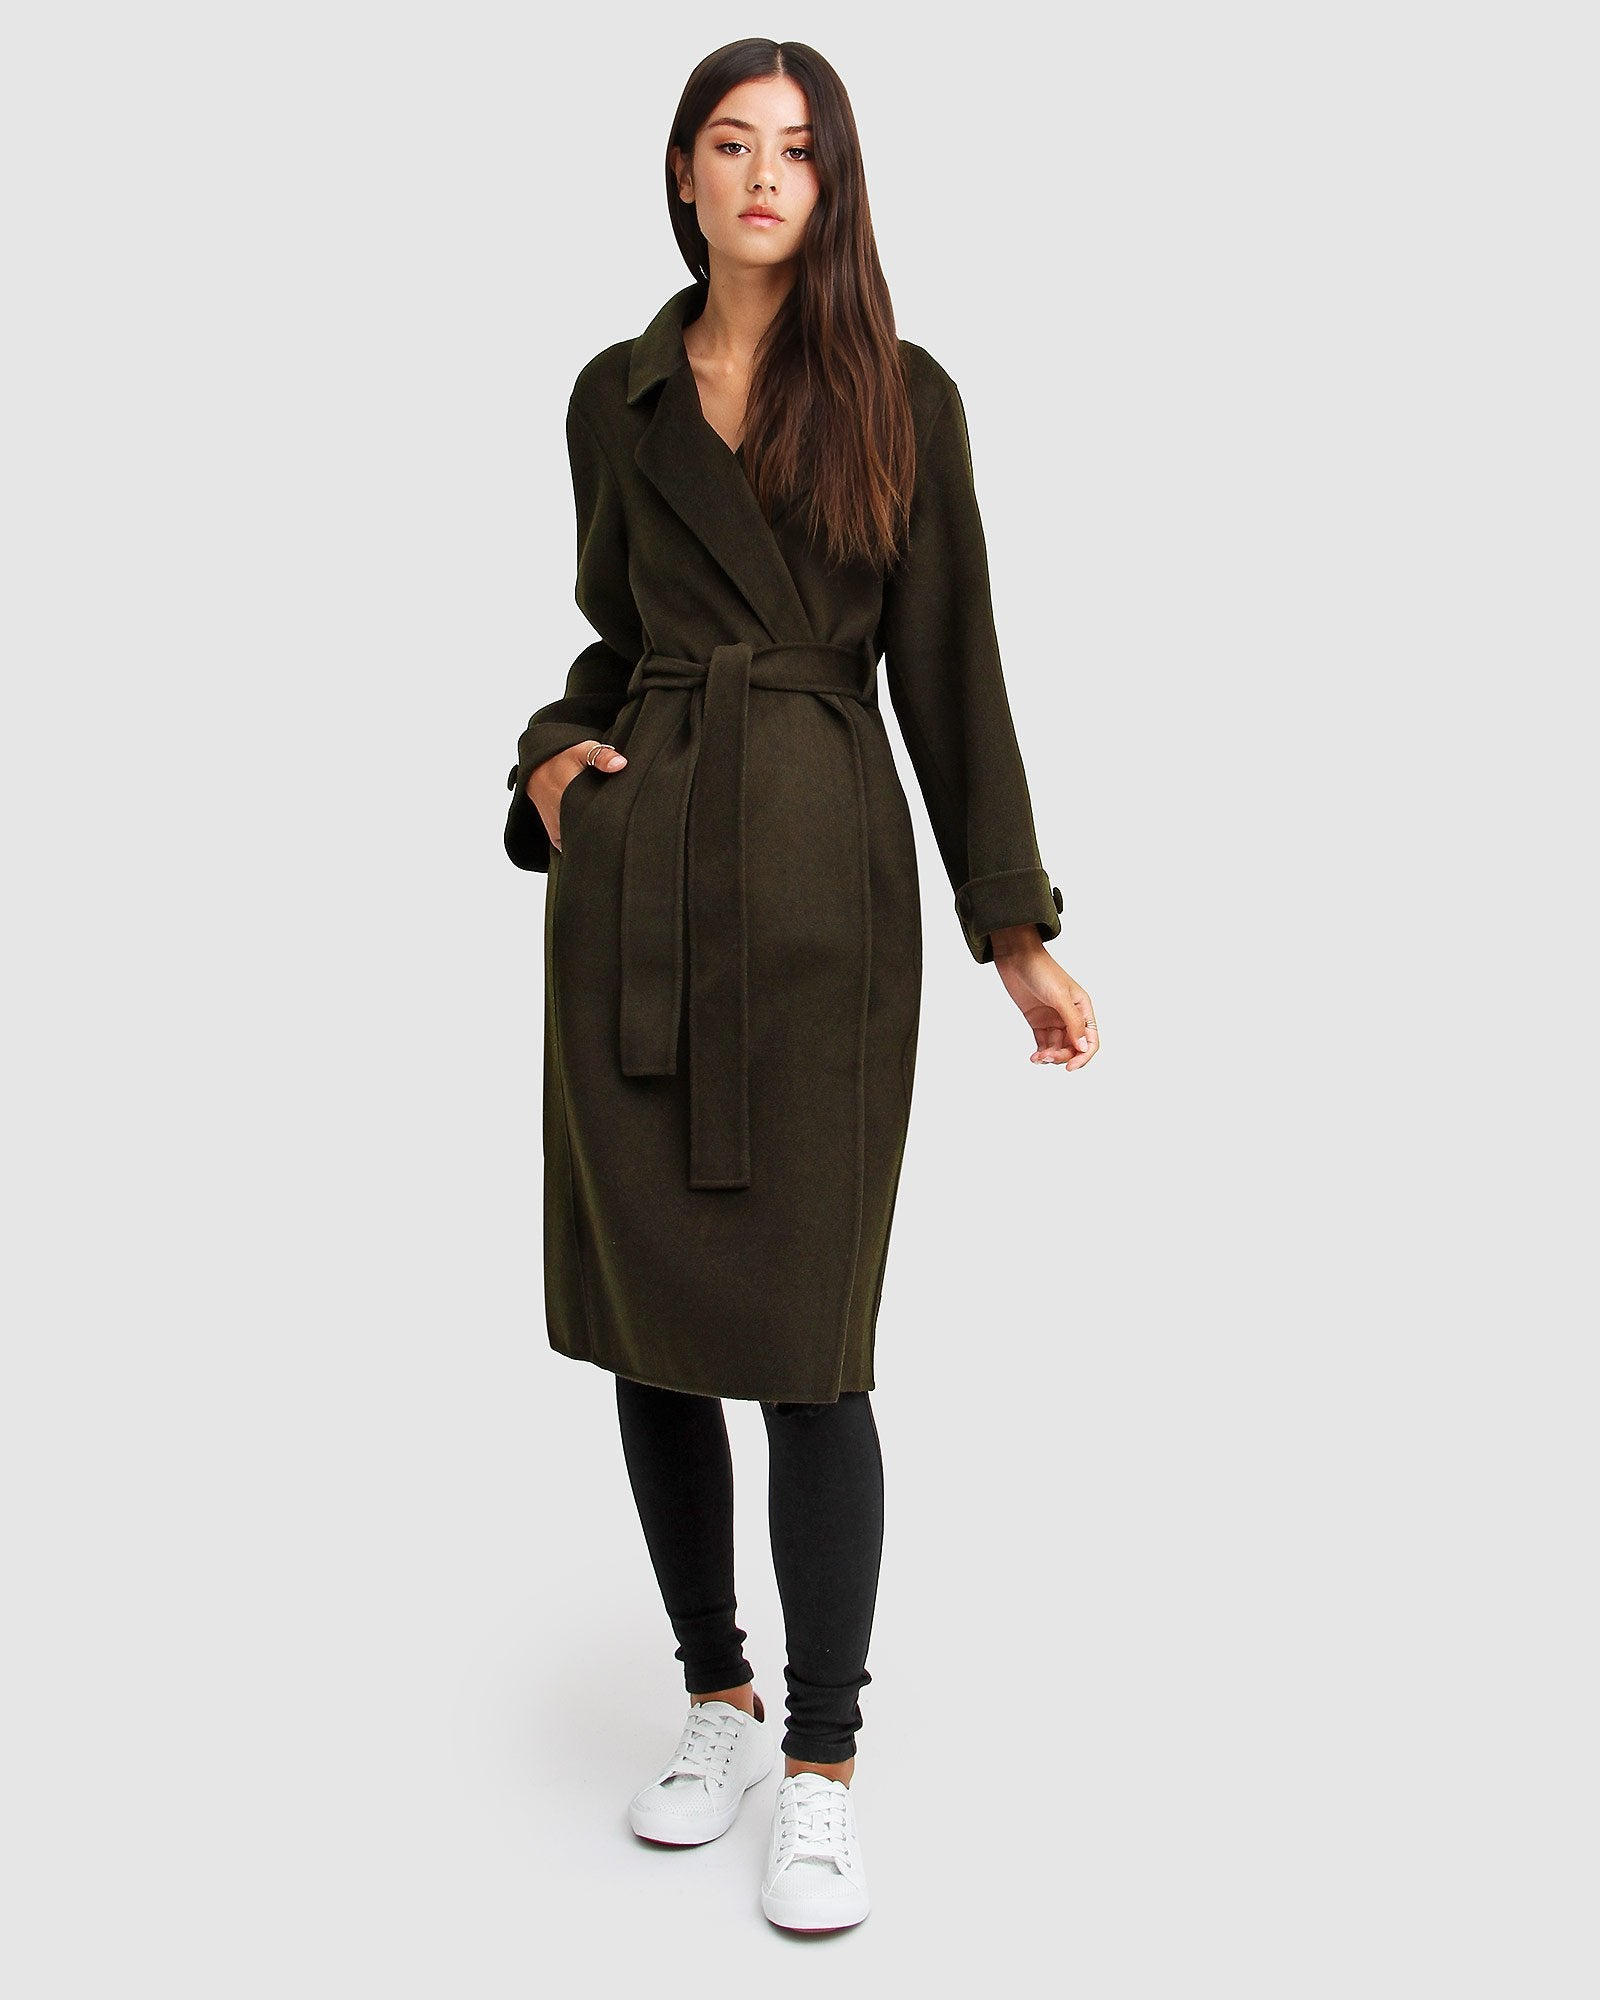 stay-wild-military-wool-belted-coat-front.jpg